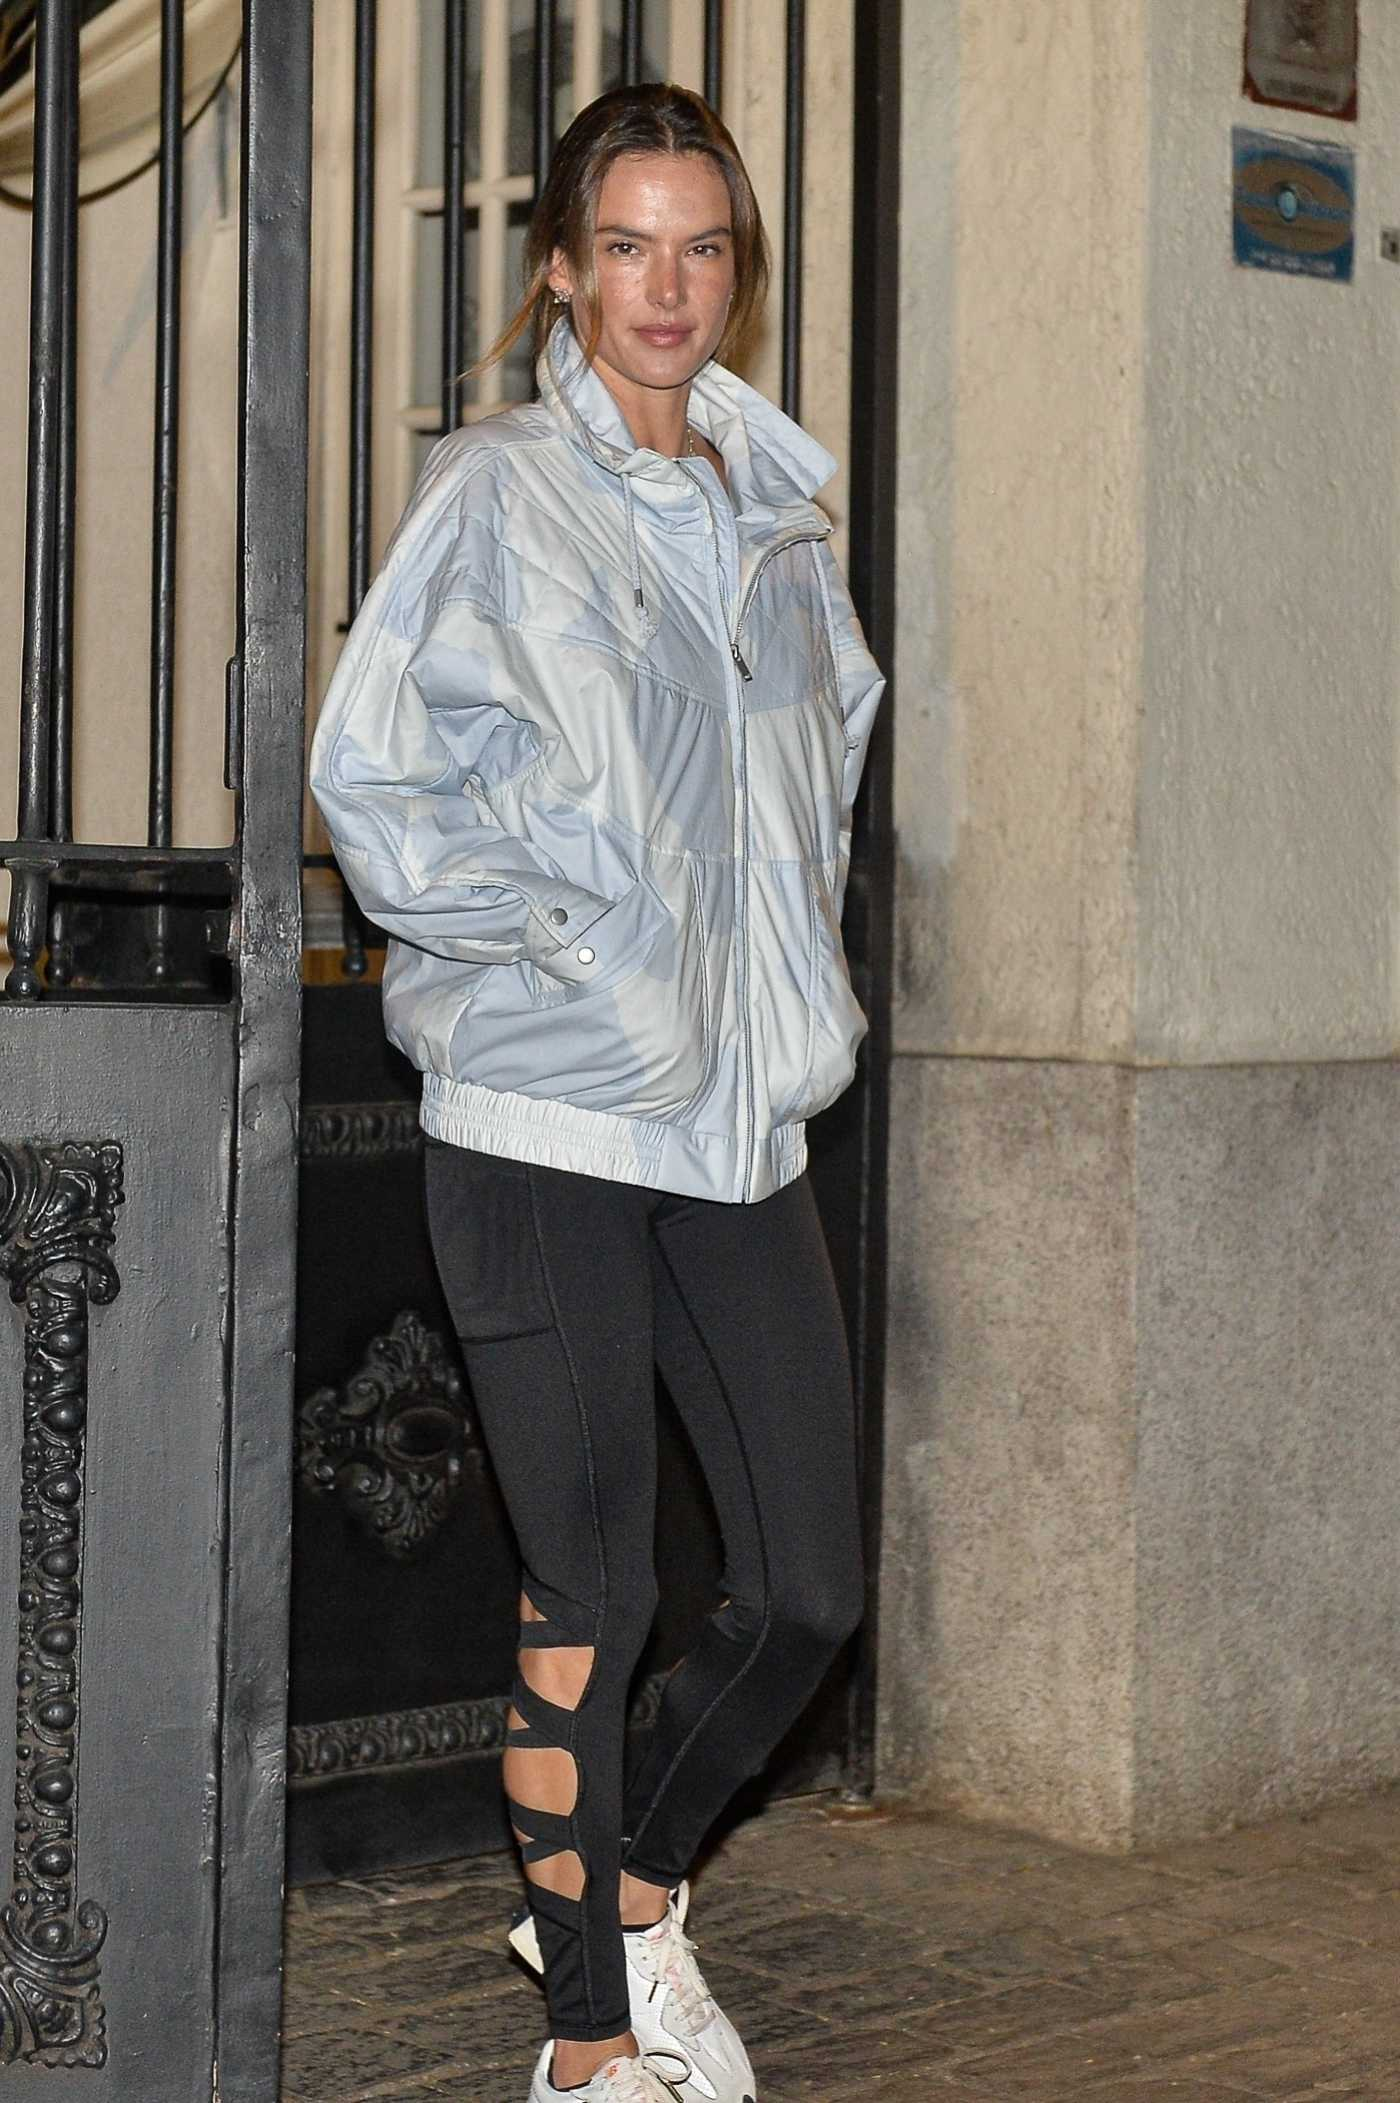 Alessandra Ambrosio in a Grey Jacket Leaves a Gym in Sao Paulo 07/19/2021